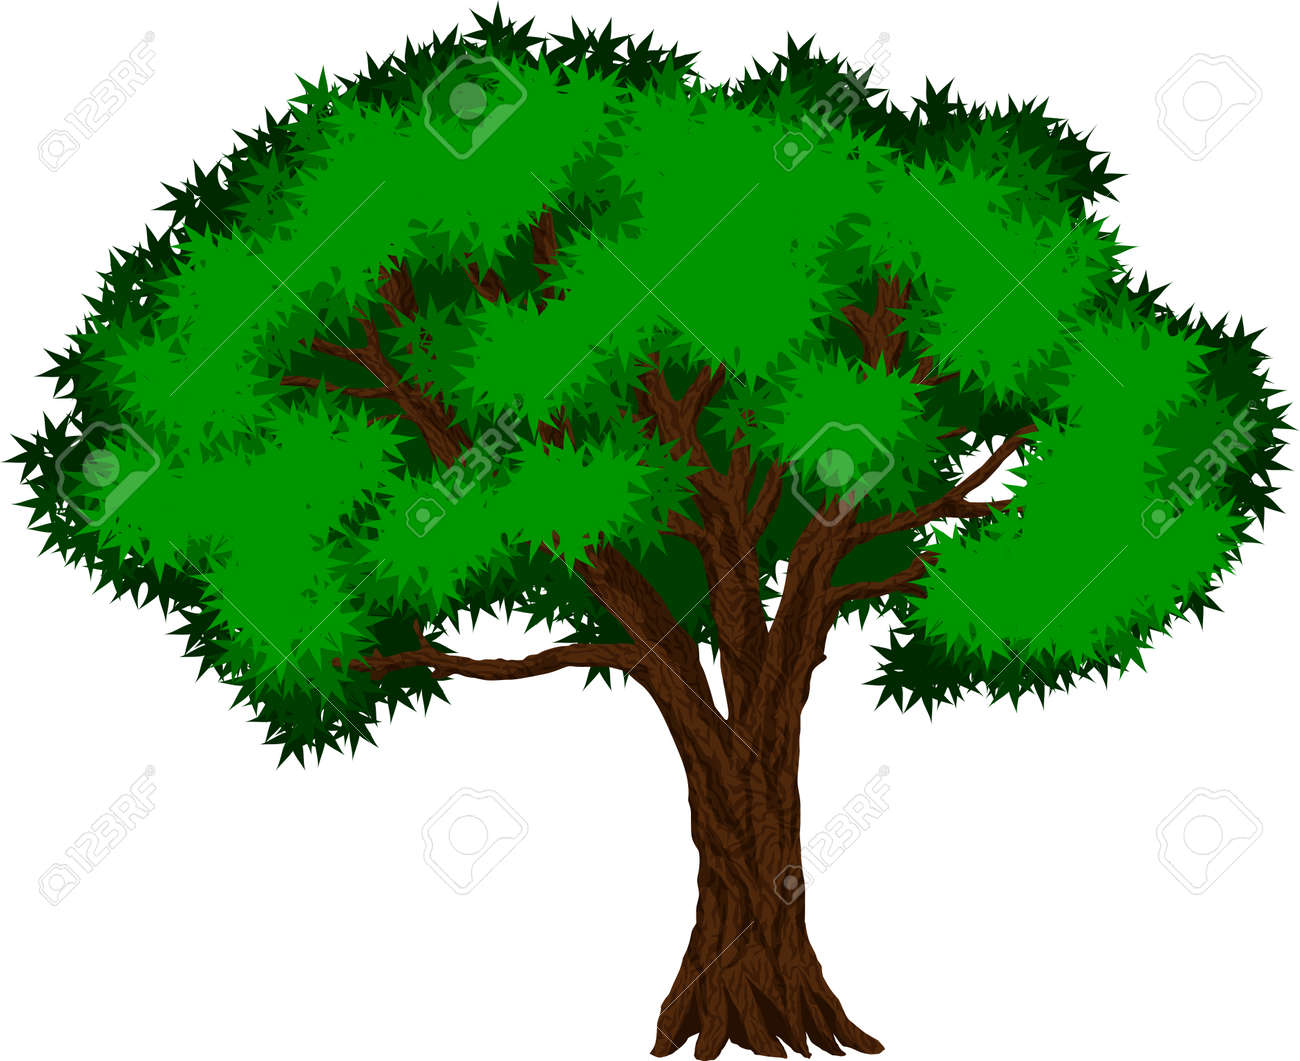 Tropical Jungle Rainforest Tree Royalty Free Cliparts Vectors And